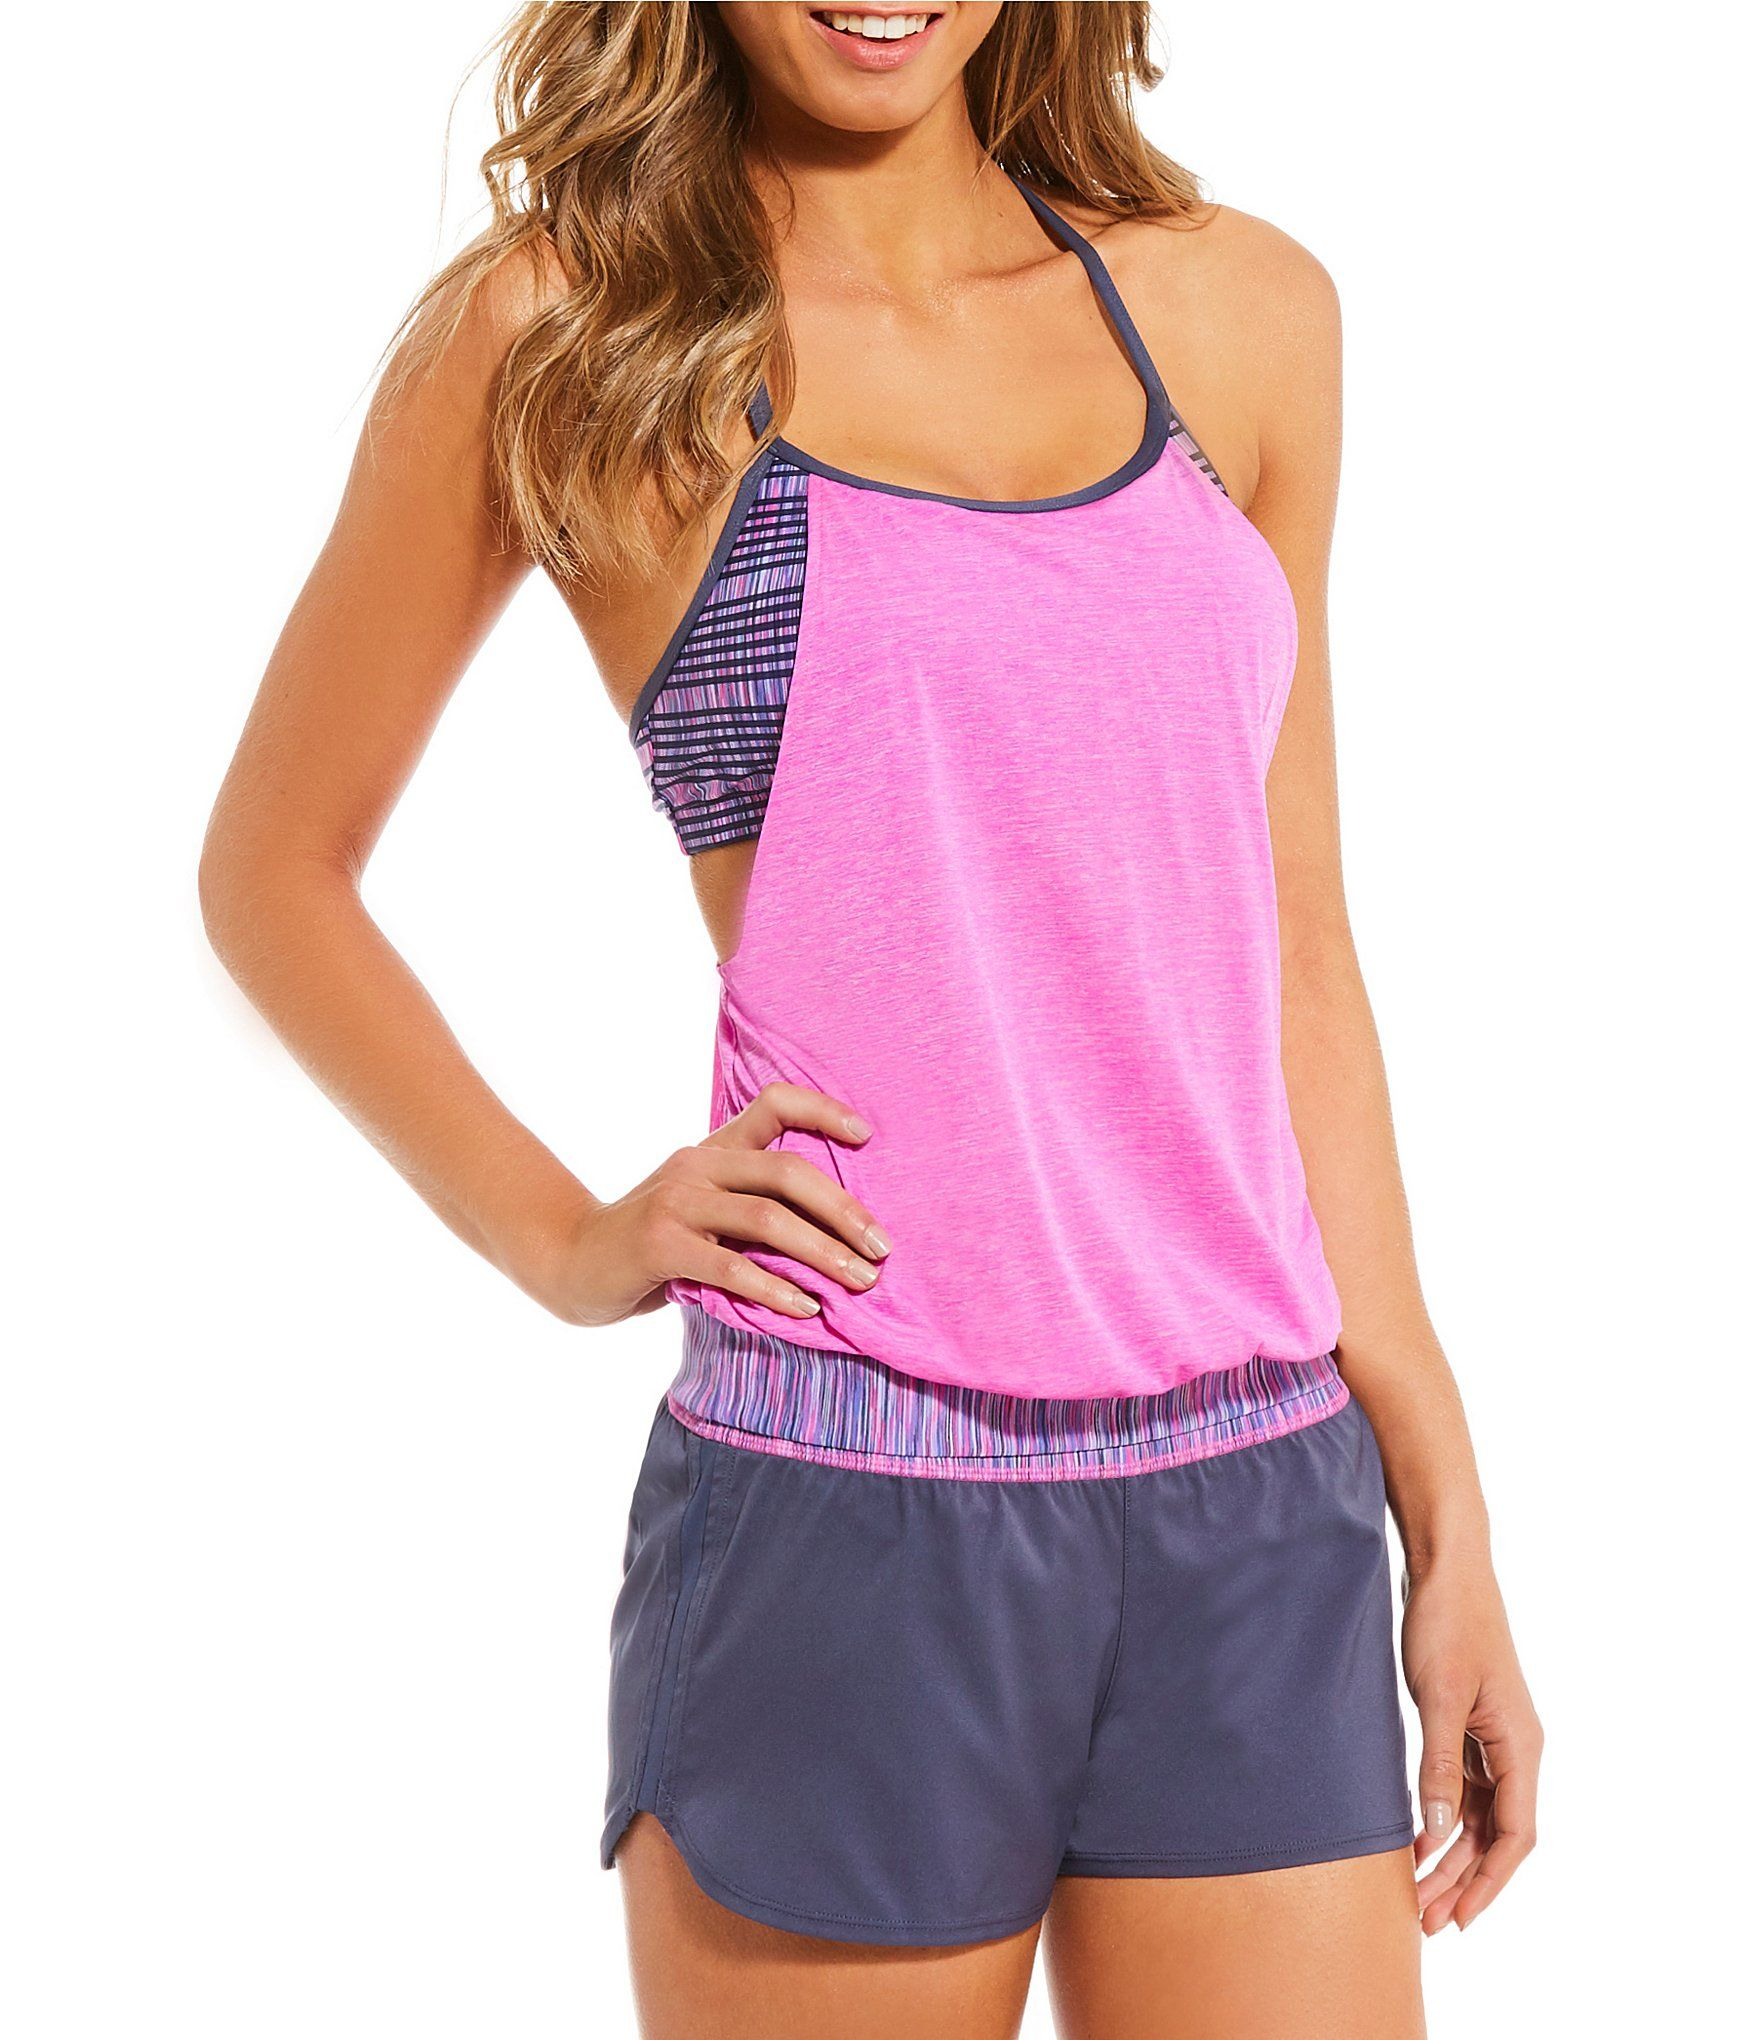 hot sale online 42a4b 32b59 Shop for Nike Double Up Layered Sport Tankini Swimsuit Top   Element Swim  Boardshort Swimsuit Bottom at Dillards.com. Visit Dillards.com to find  clothing, ...